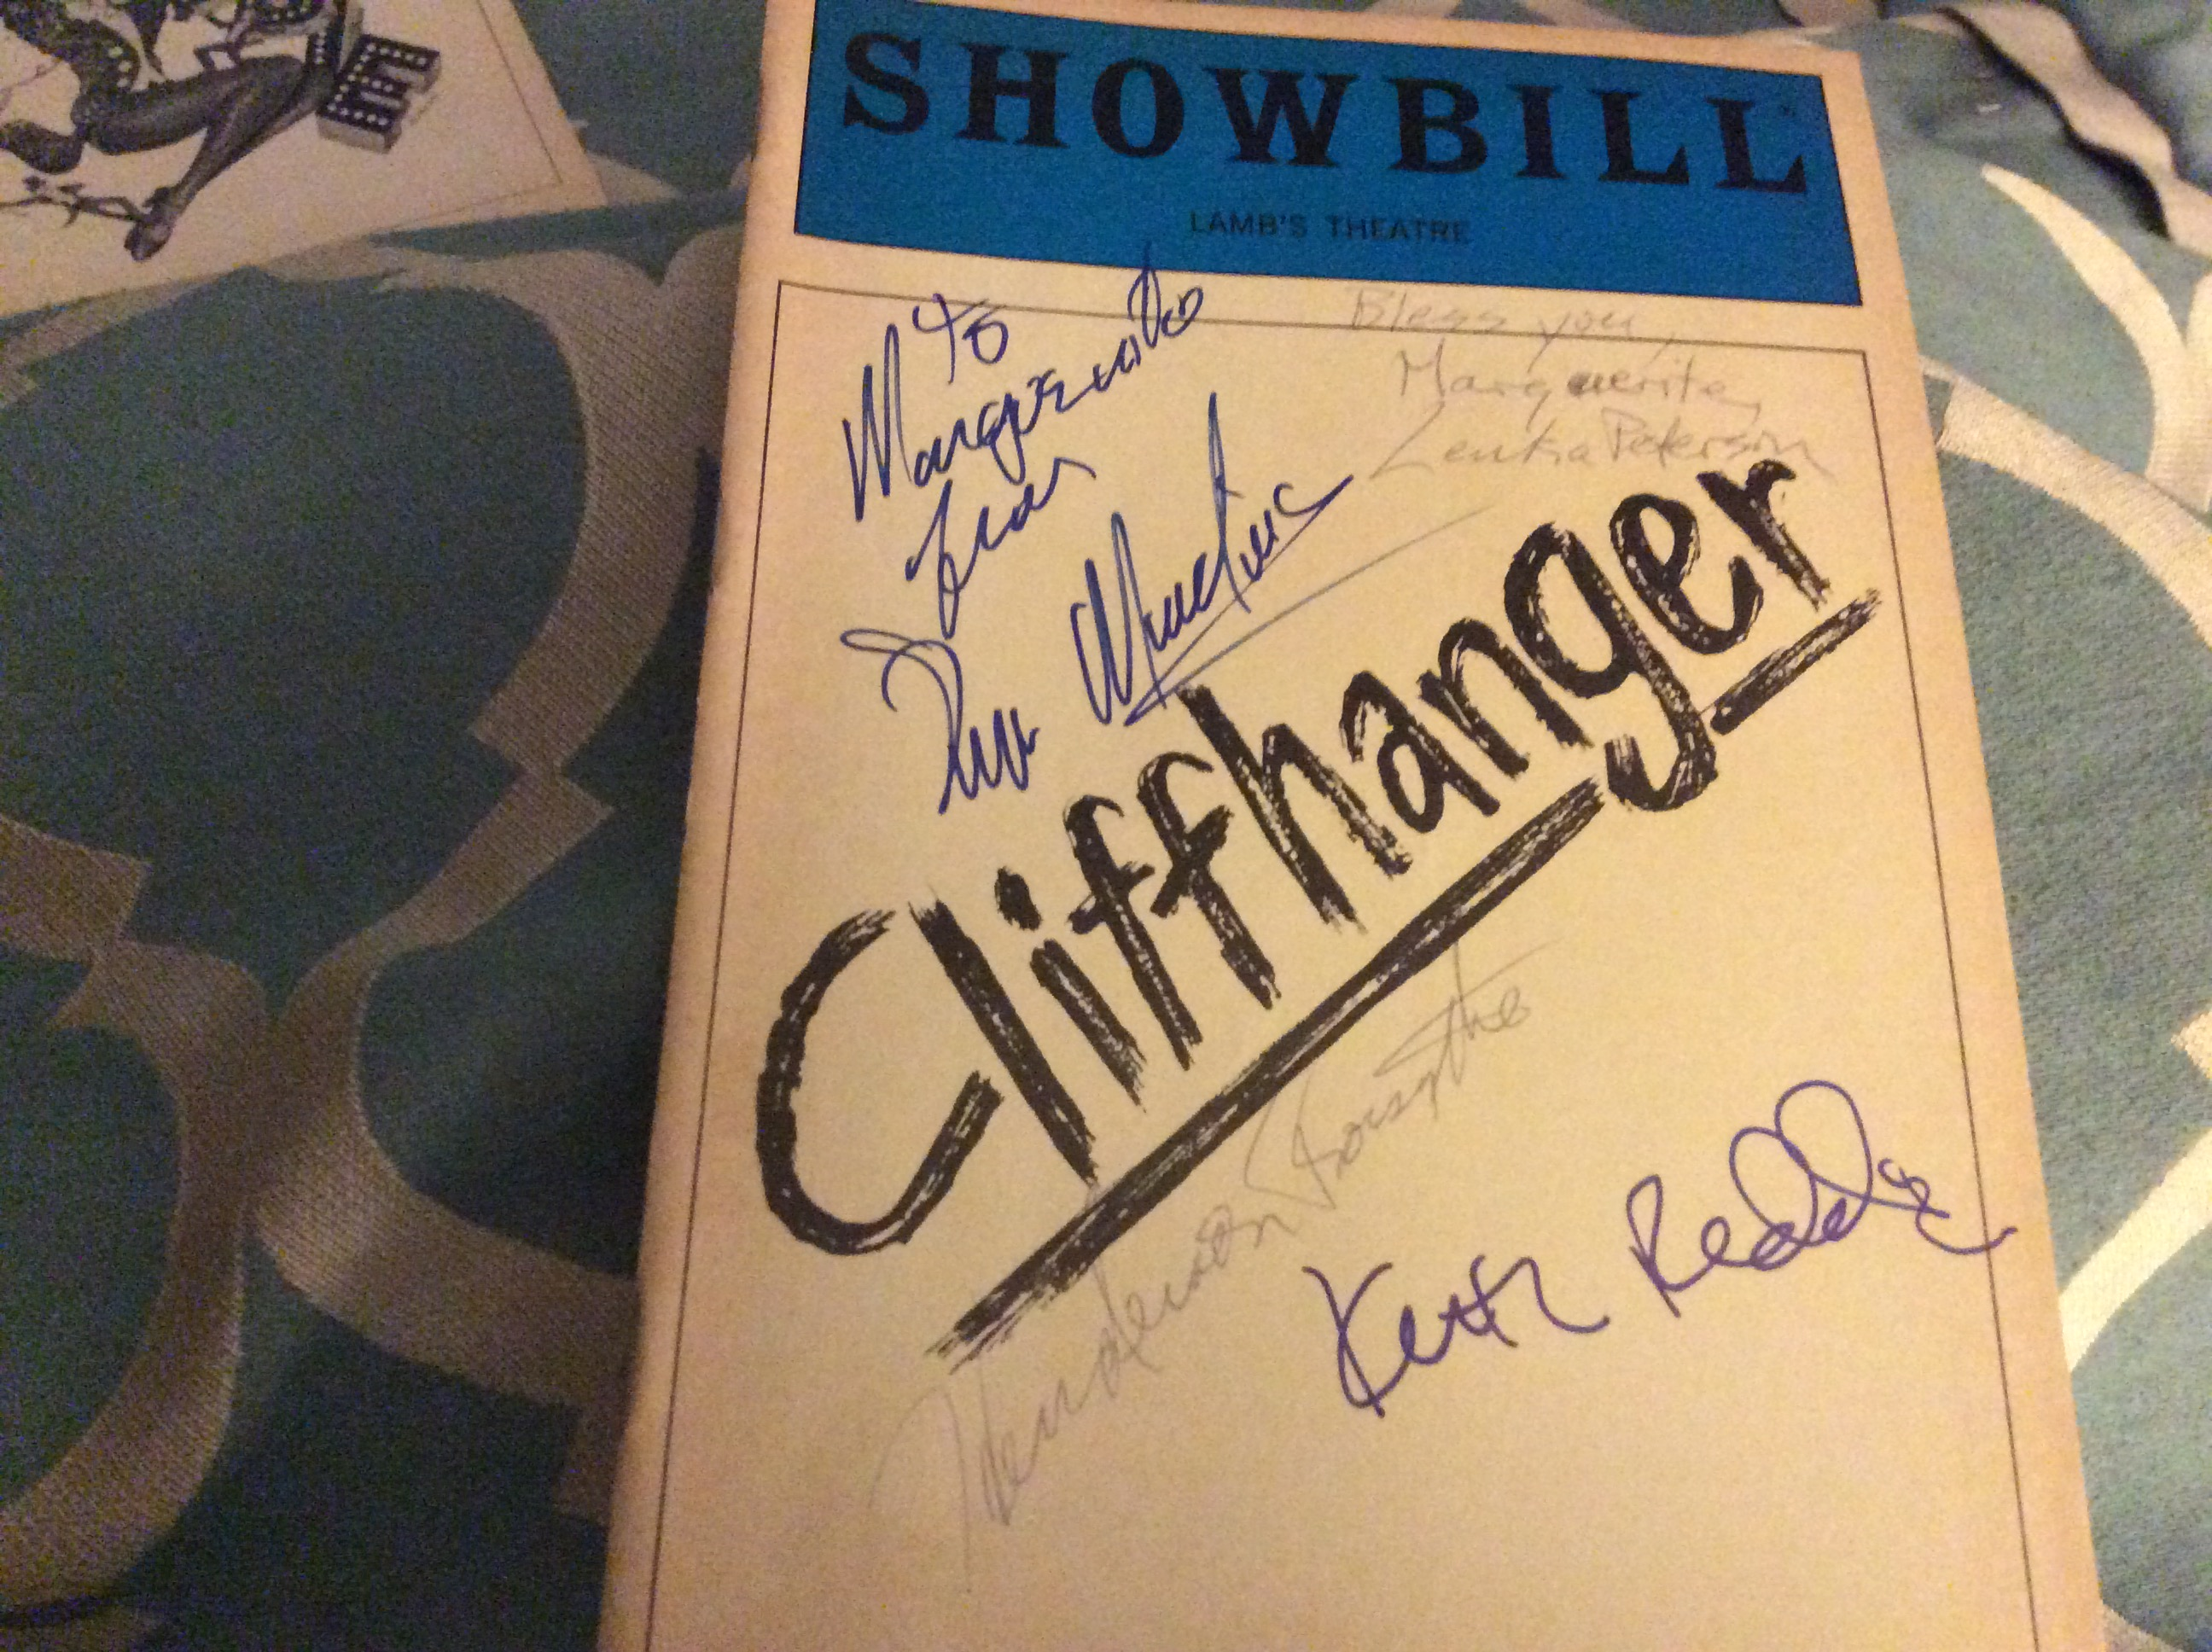 Cliffhanger signed Playbi